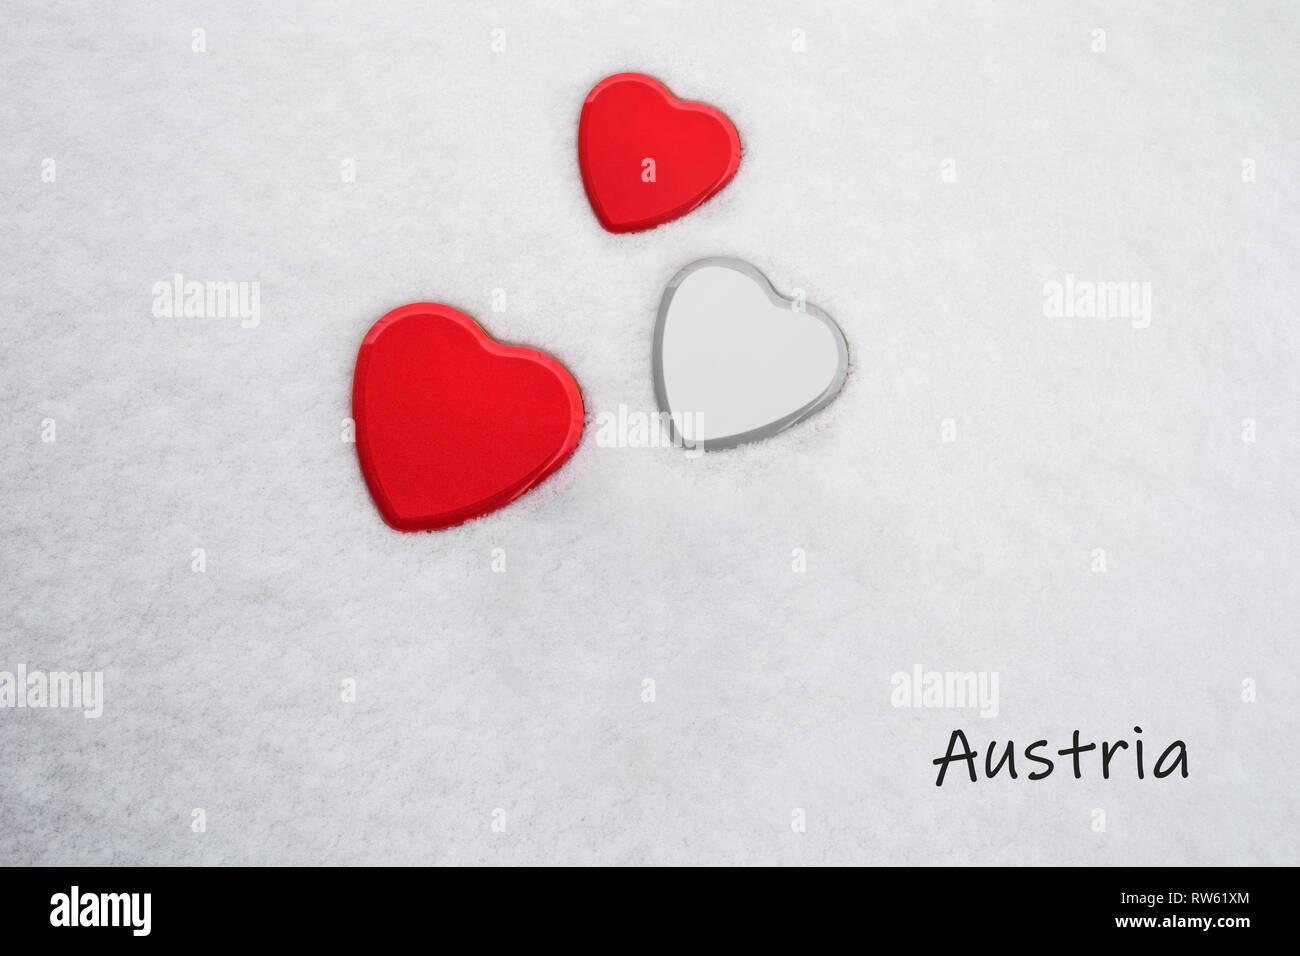 Colors of the austrian flag (Imperial Red (top/bottom) and White) painted on three hearts. Snow background with the country, Austria, written - Stock Image